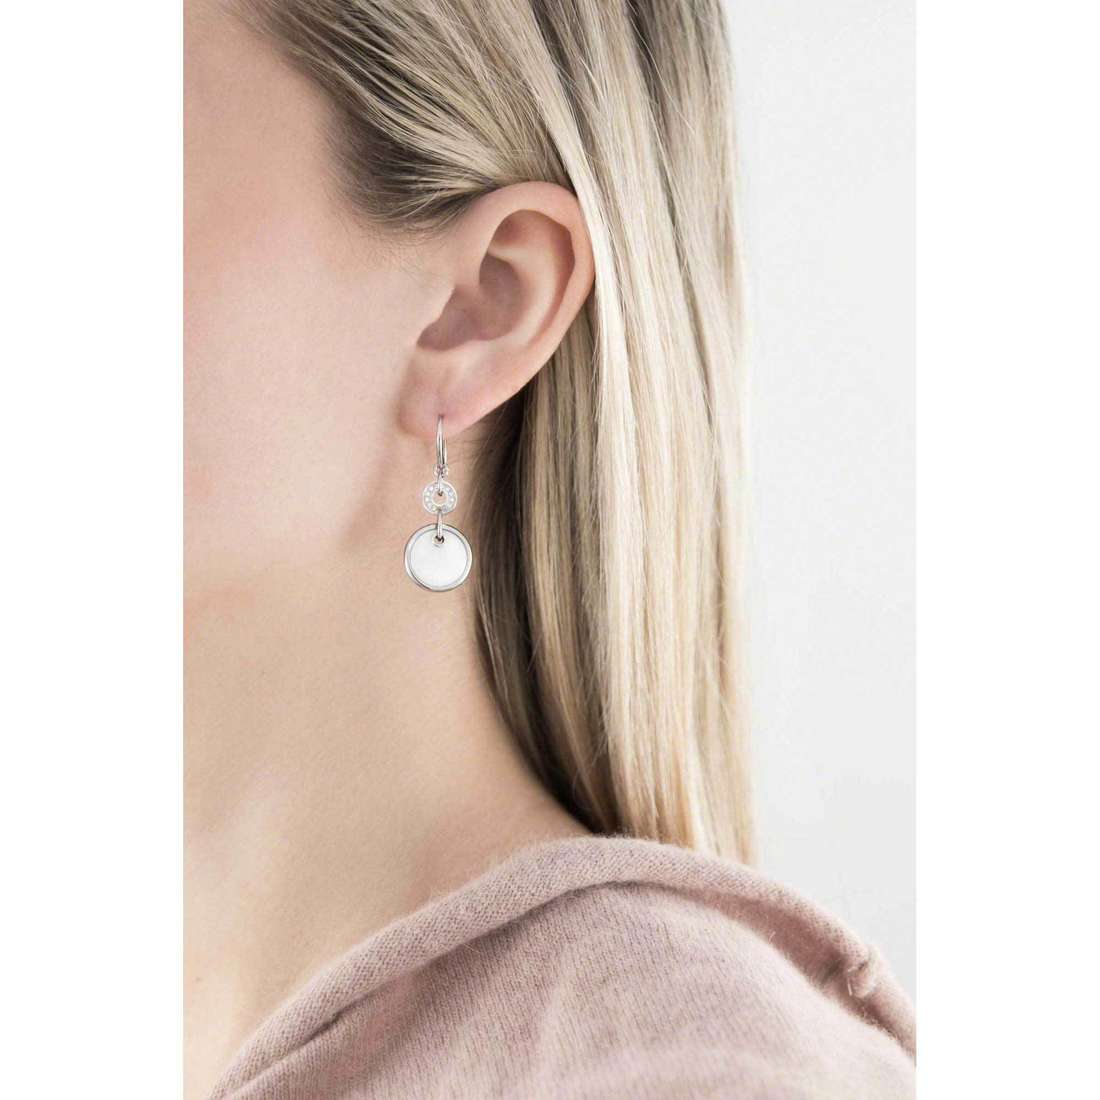 Fossil boucles d'oreille femme JF00551040 indosso